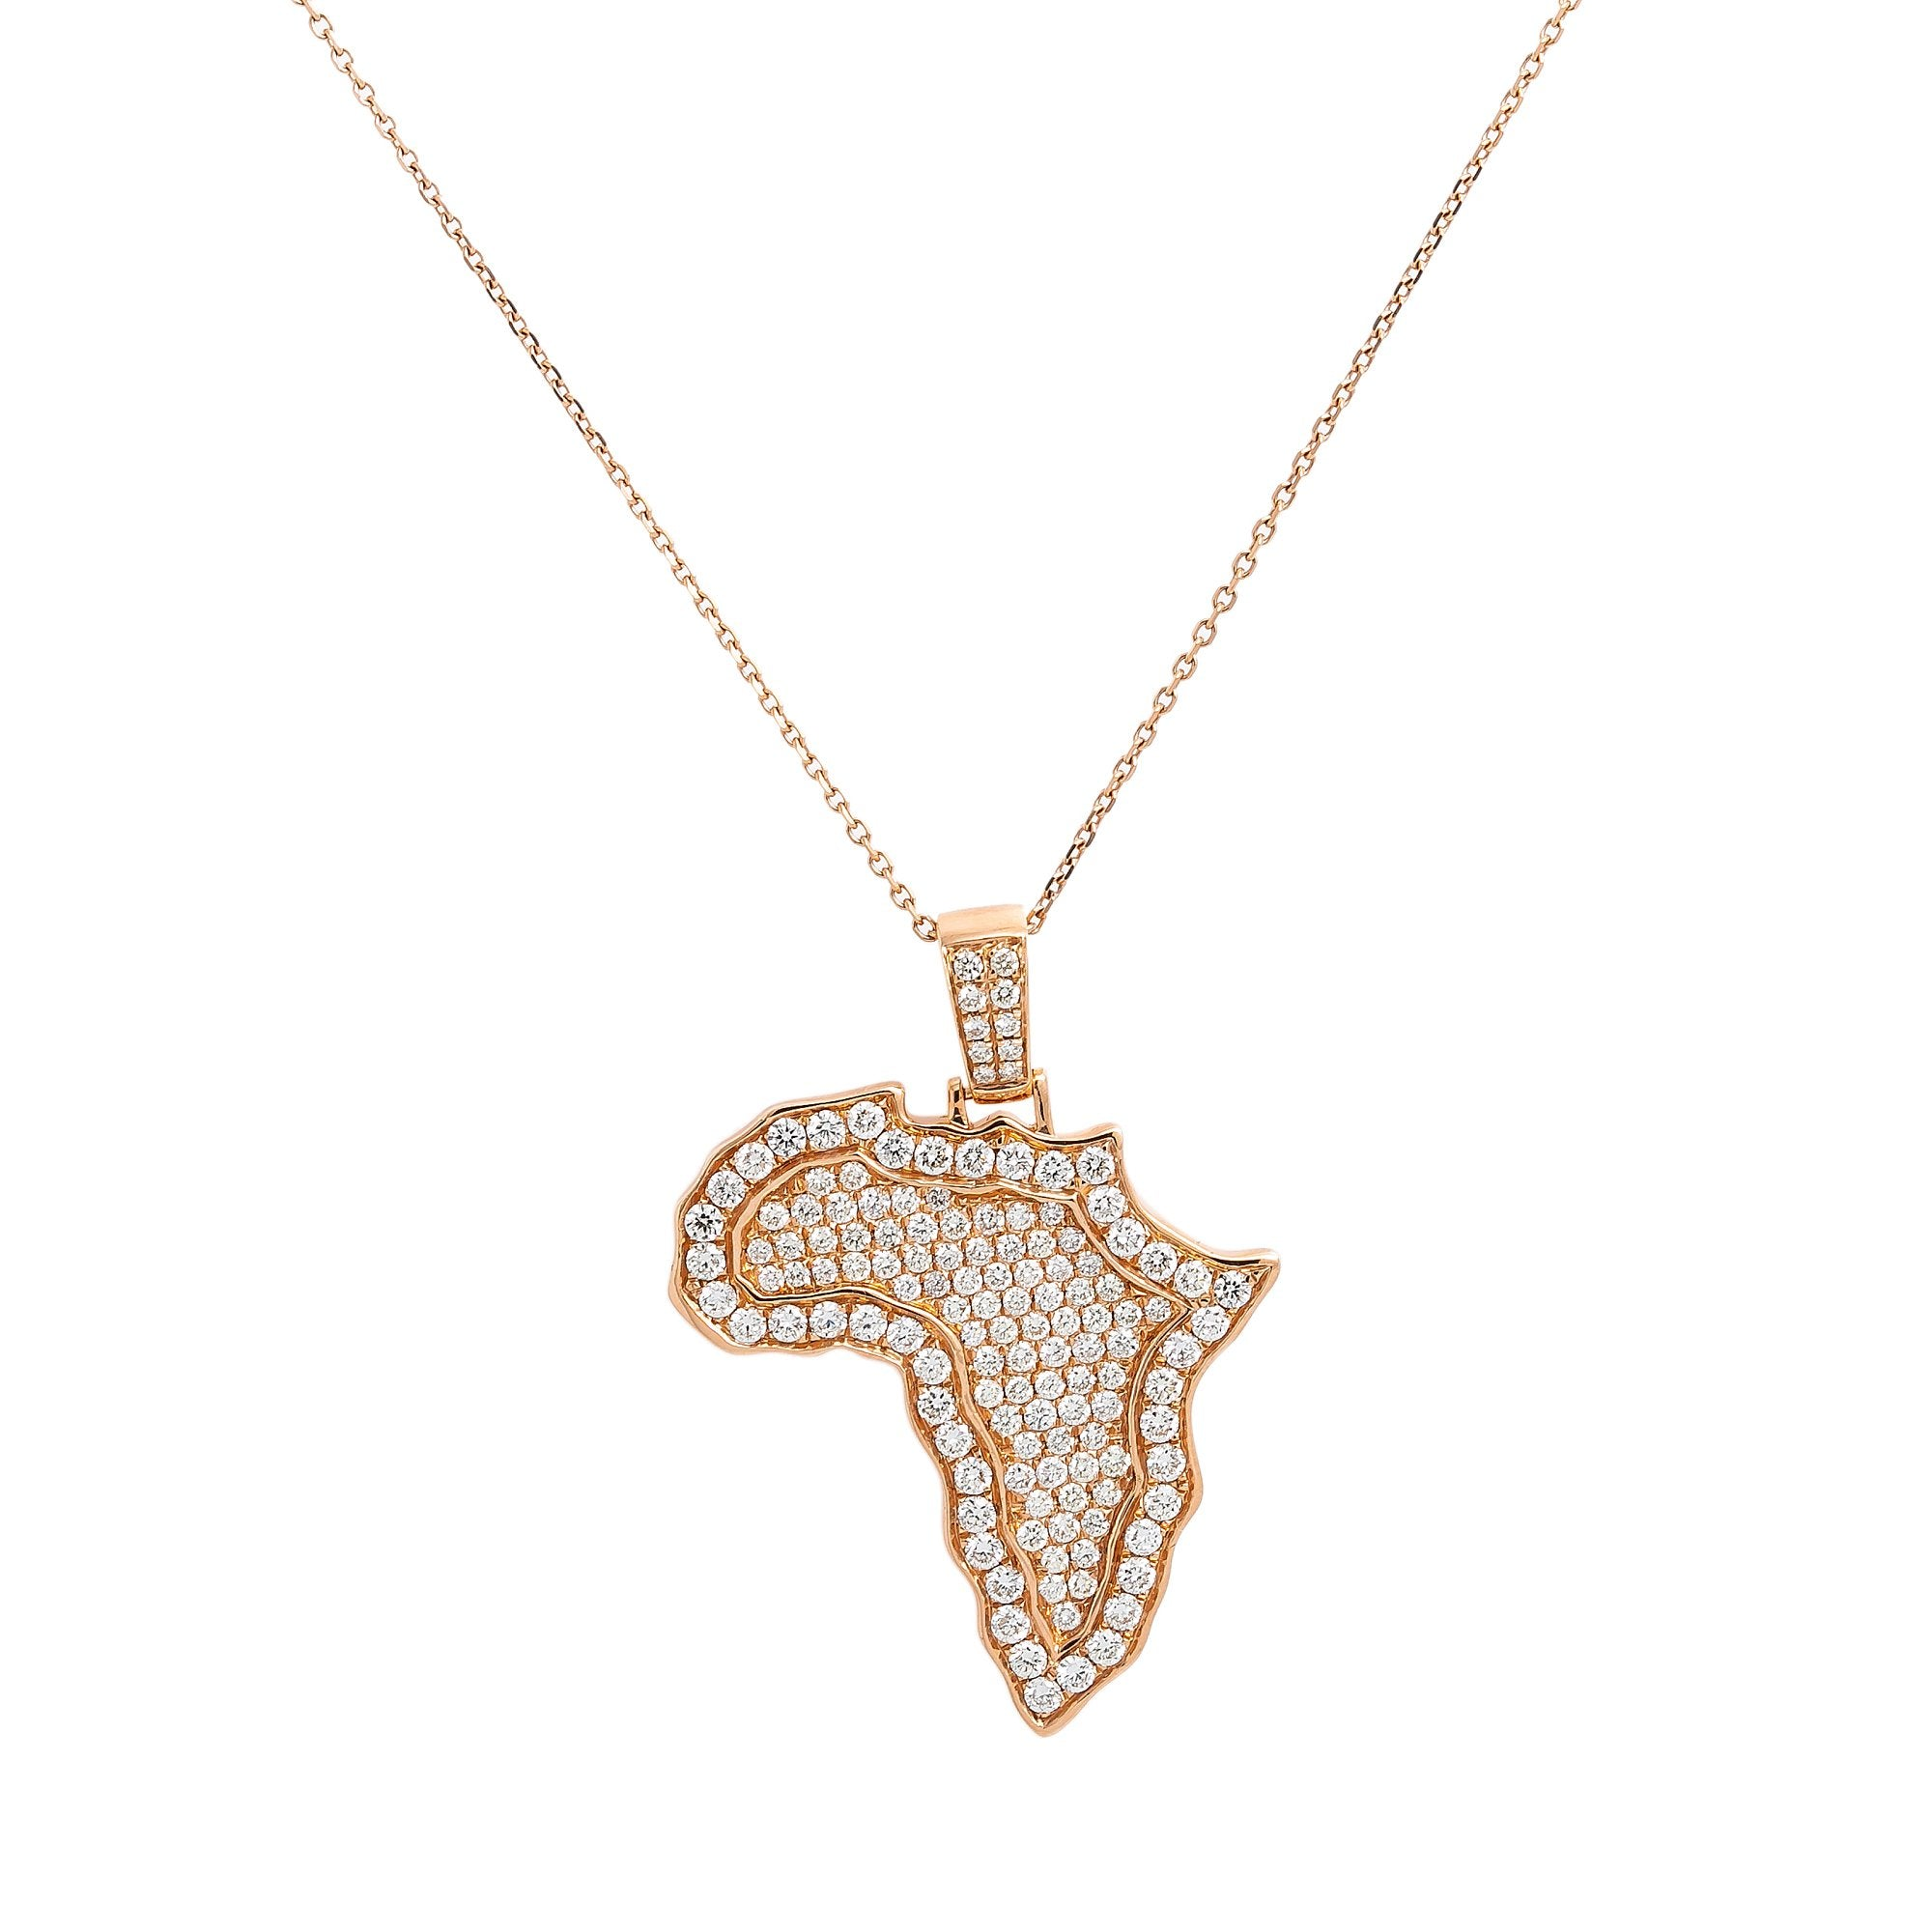 Unisex 14K Rose Gold Africa Pendant with 1.87 CT Diamonds